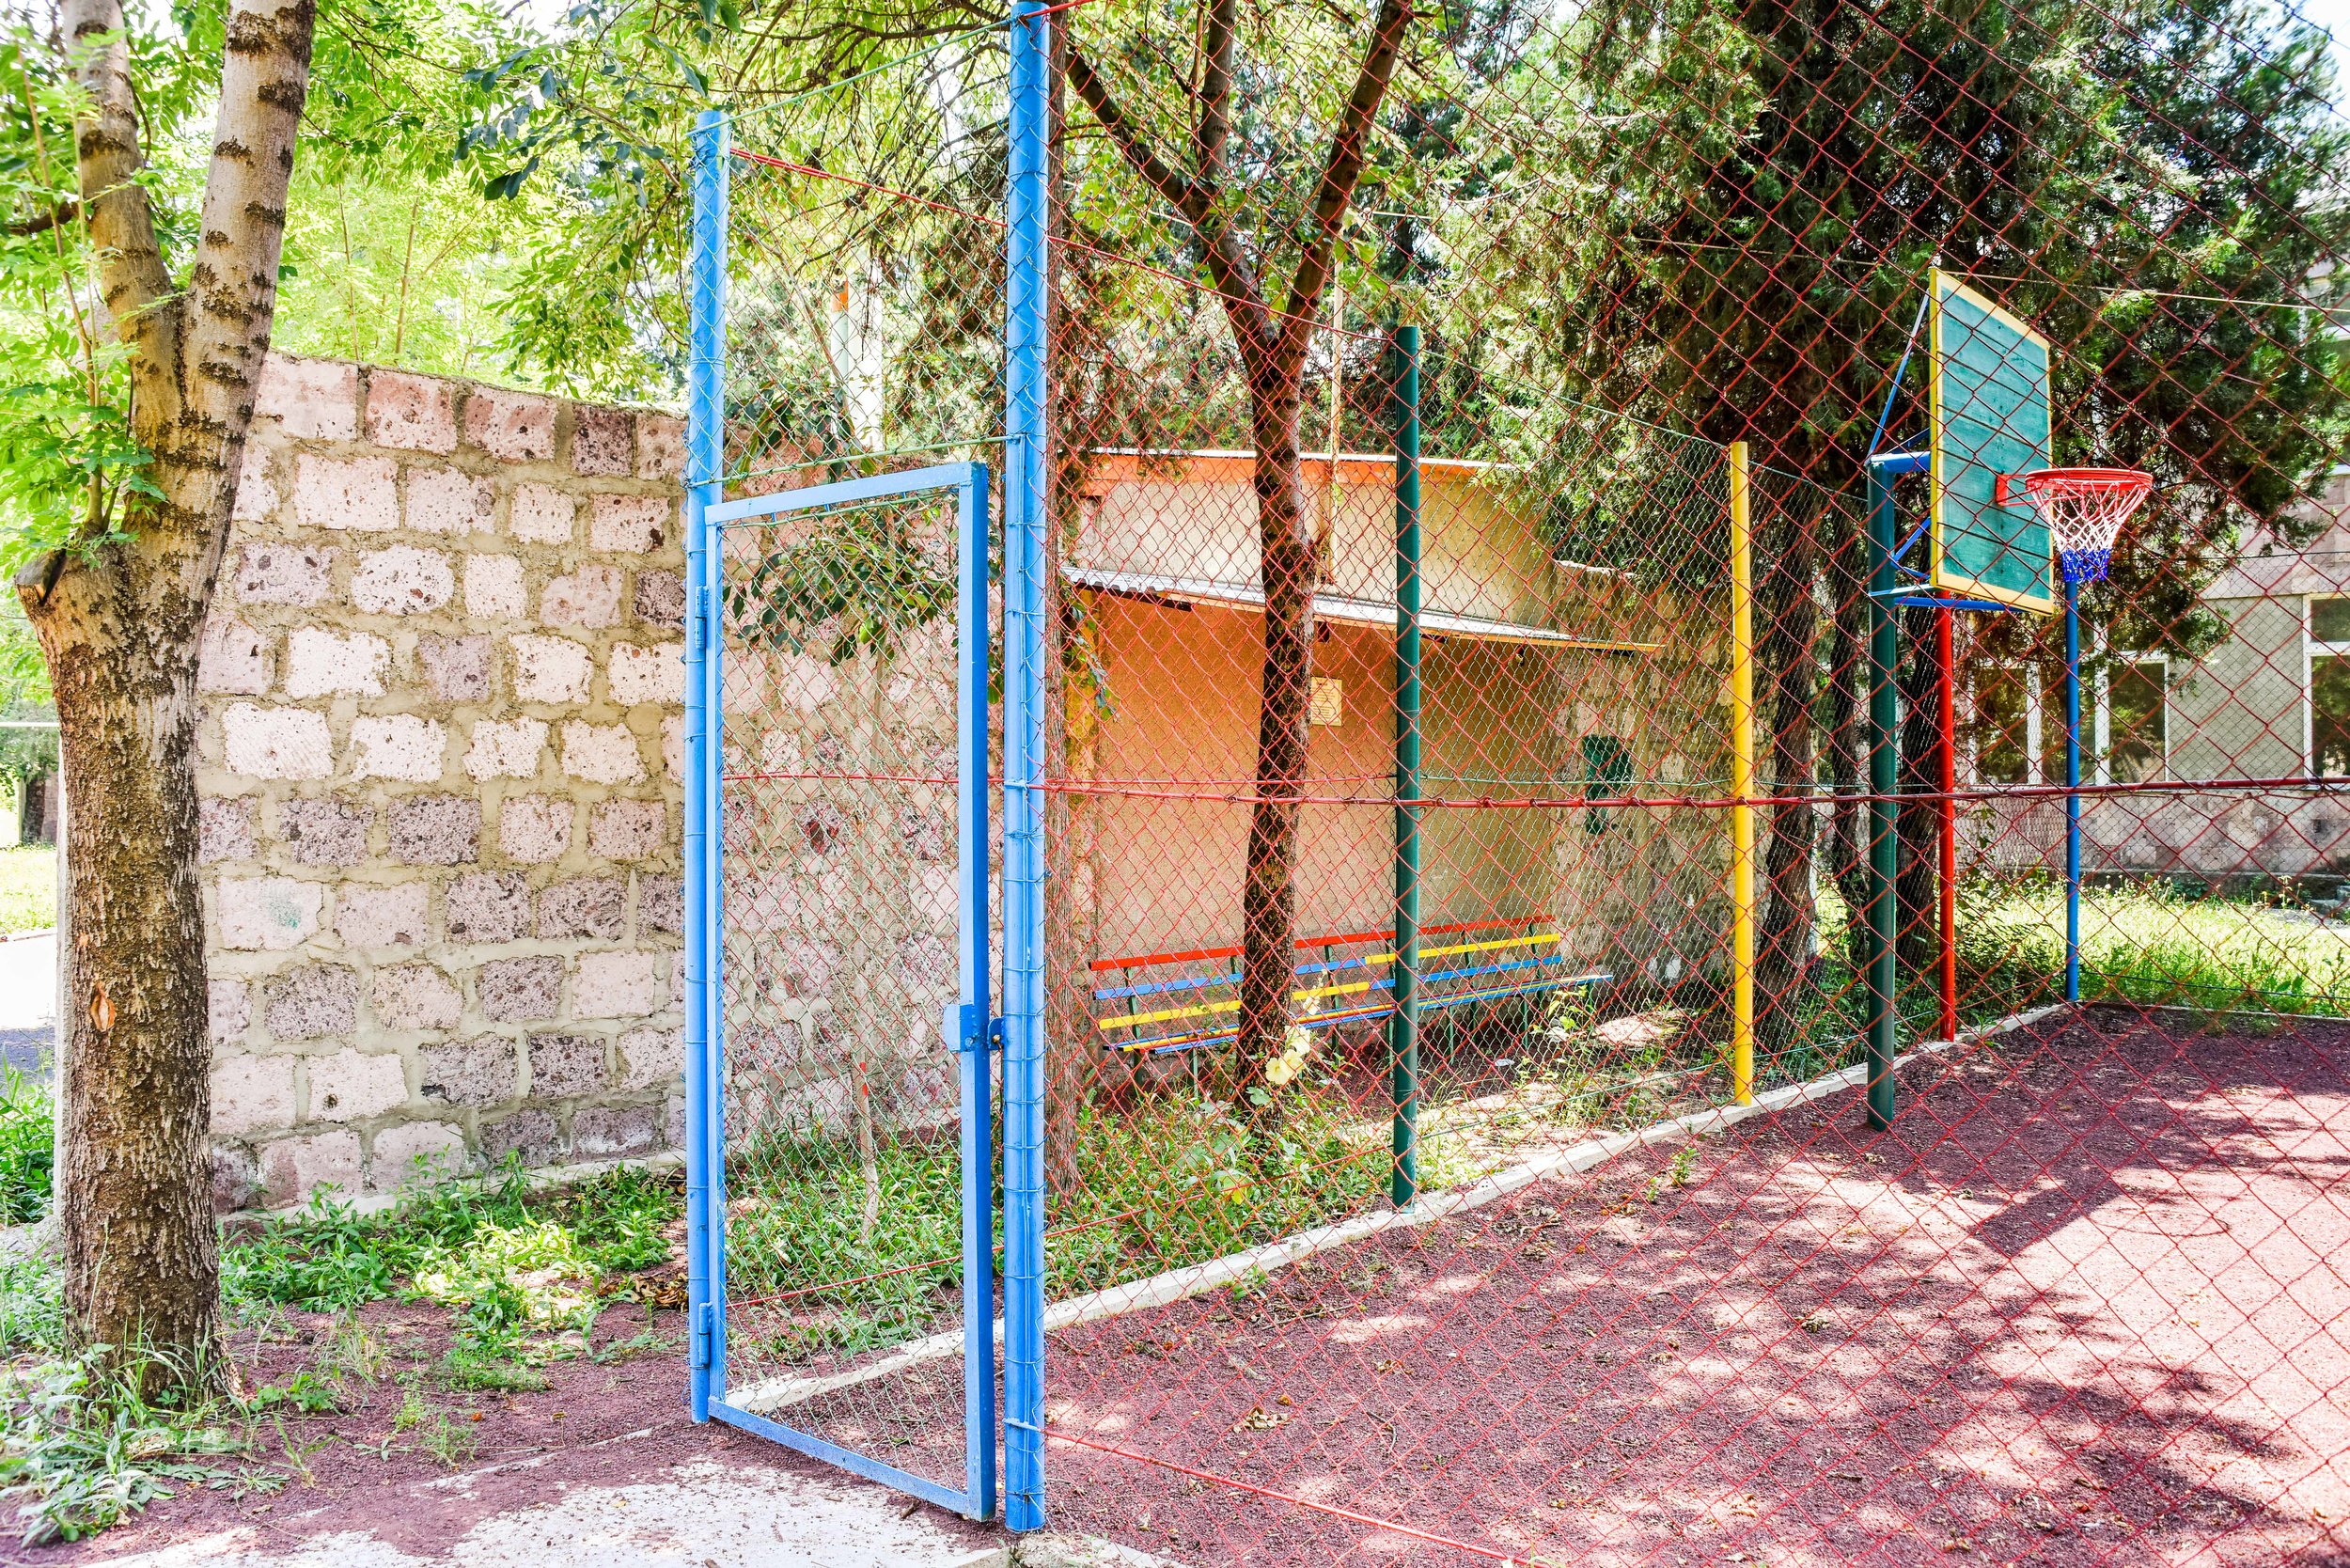 Wall encircling the playground to protect it from gunfire, such as Ayo! has helped provide to villages needing safe spaces for children.